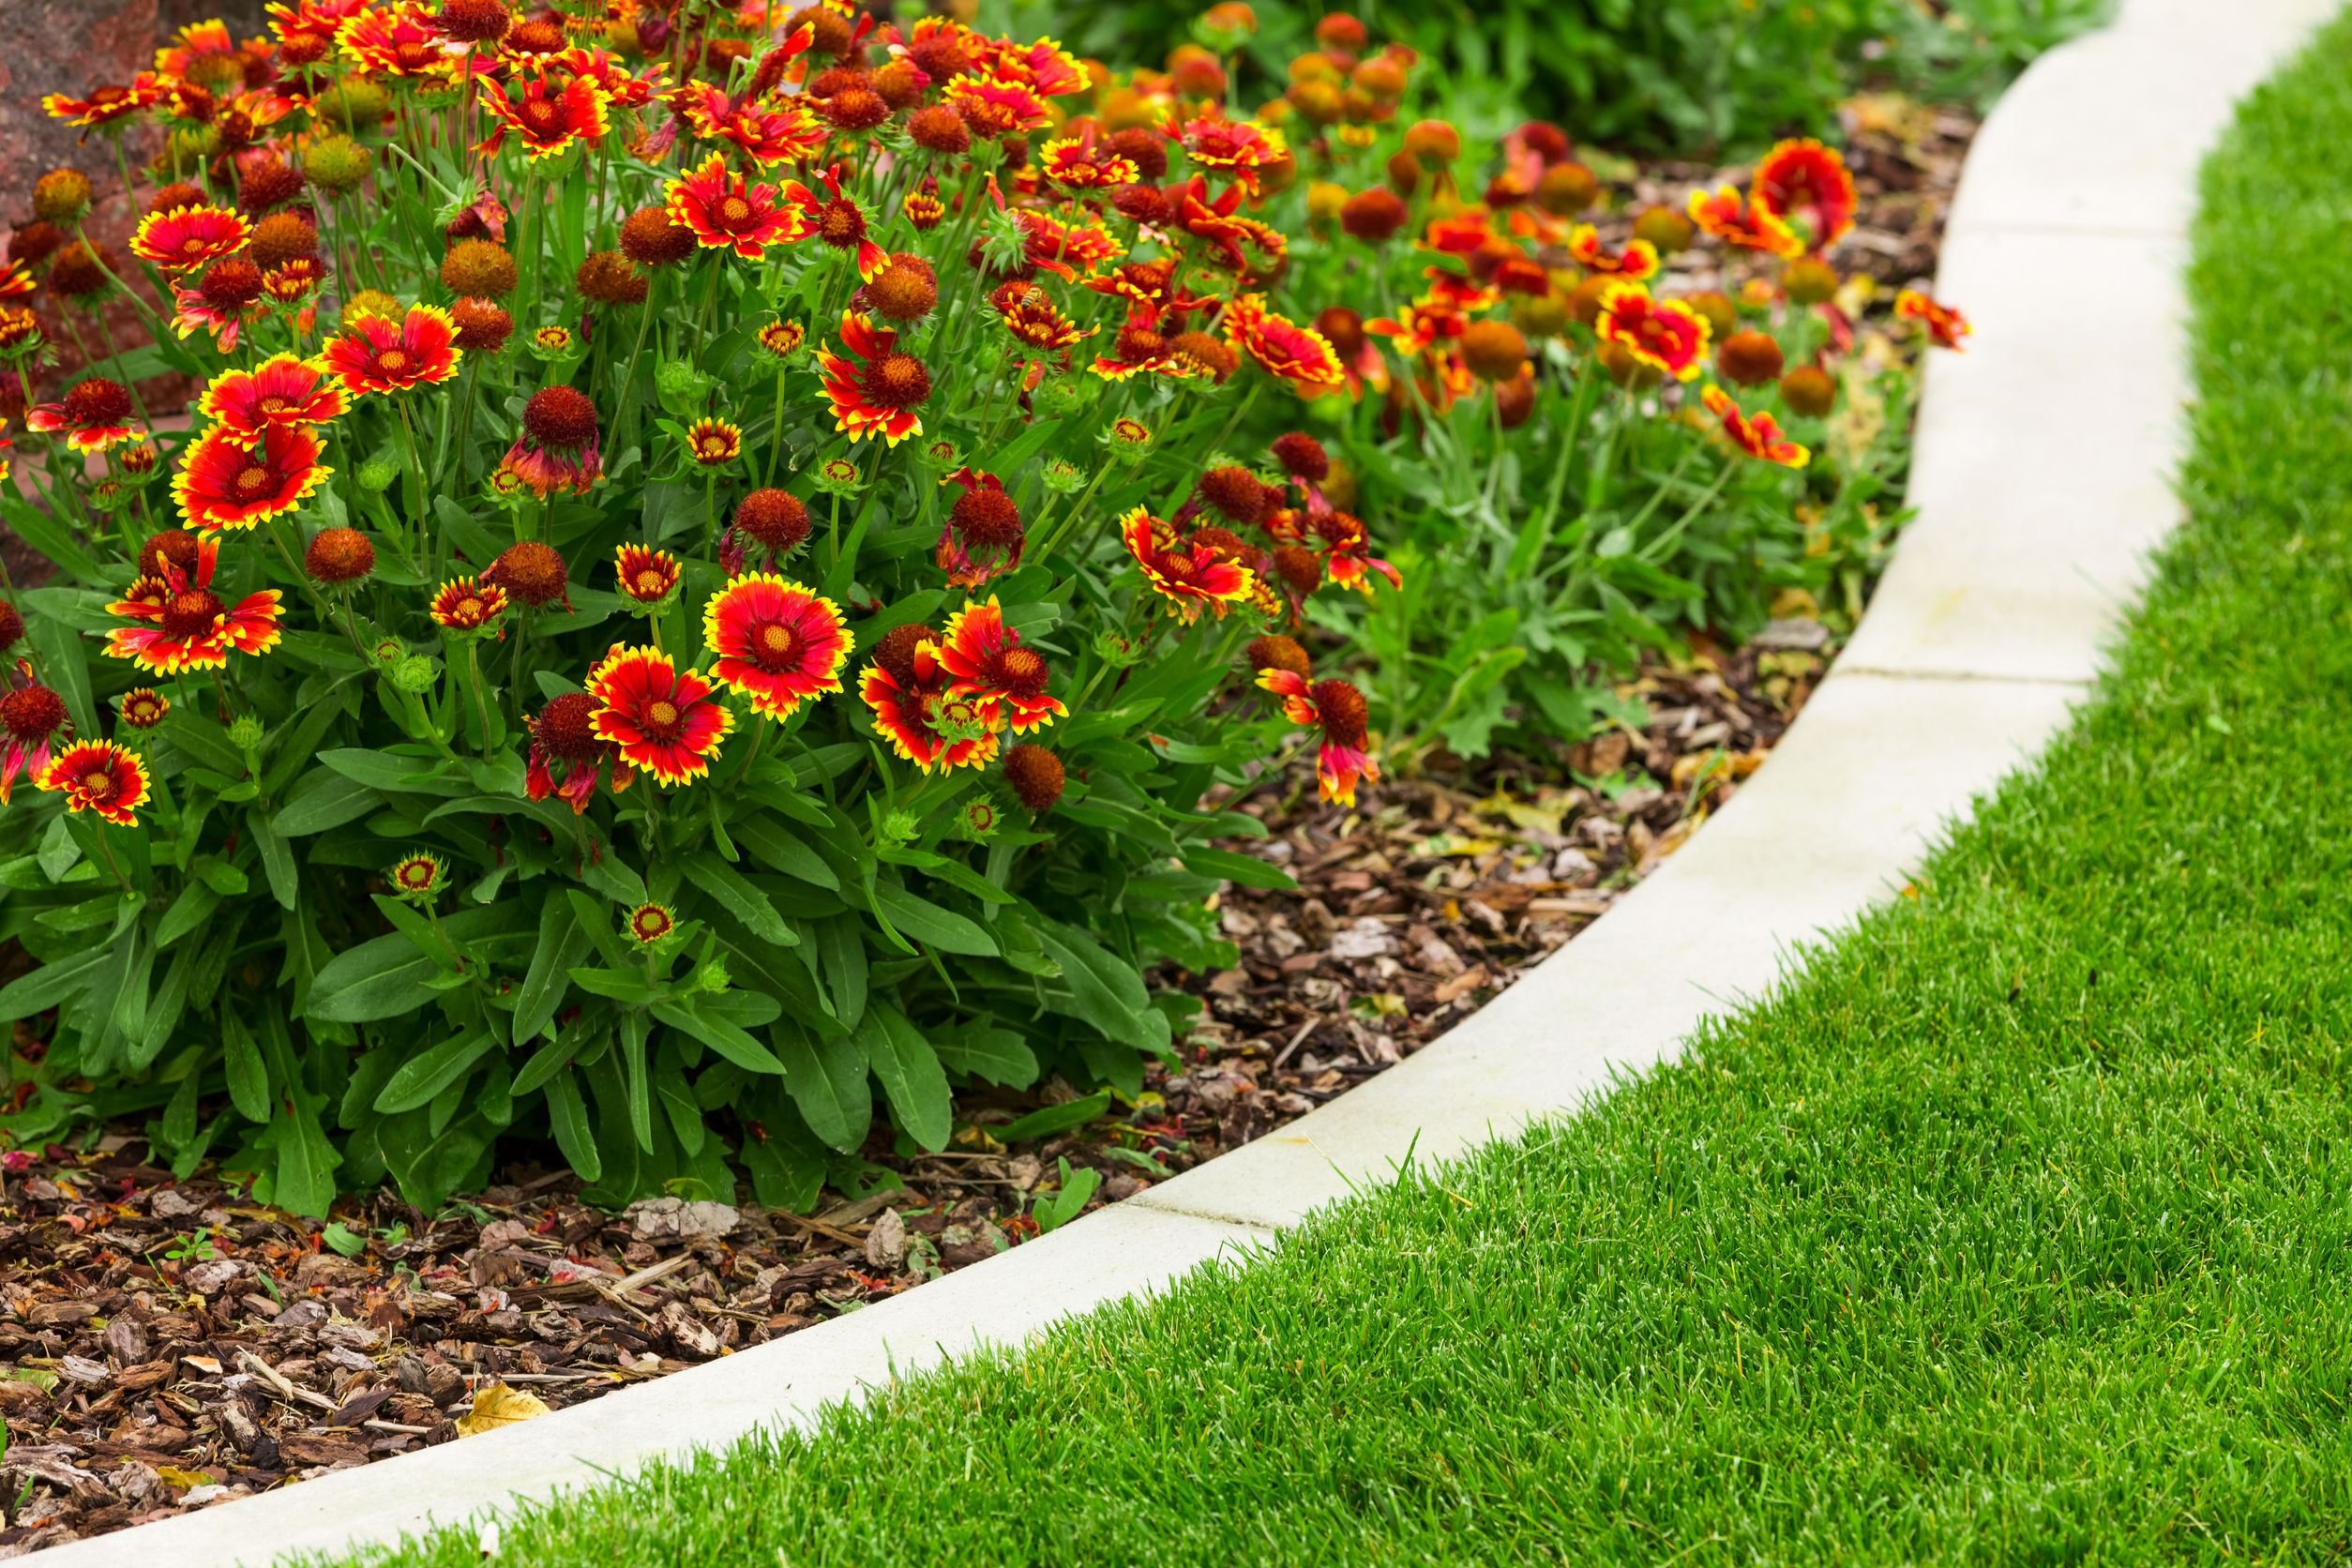 blanket flower edging with turf